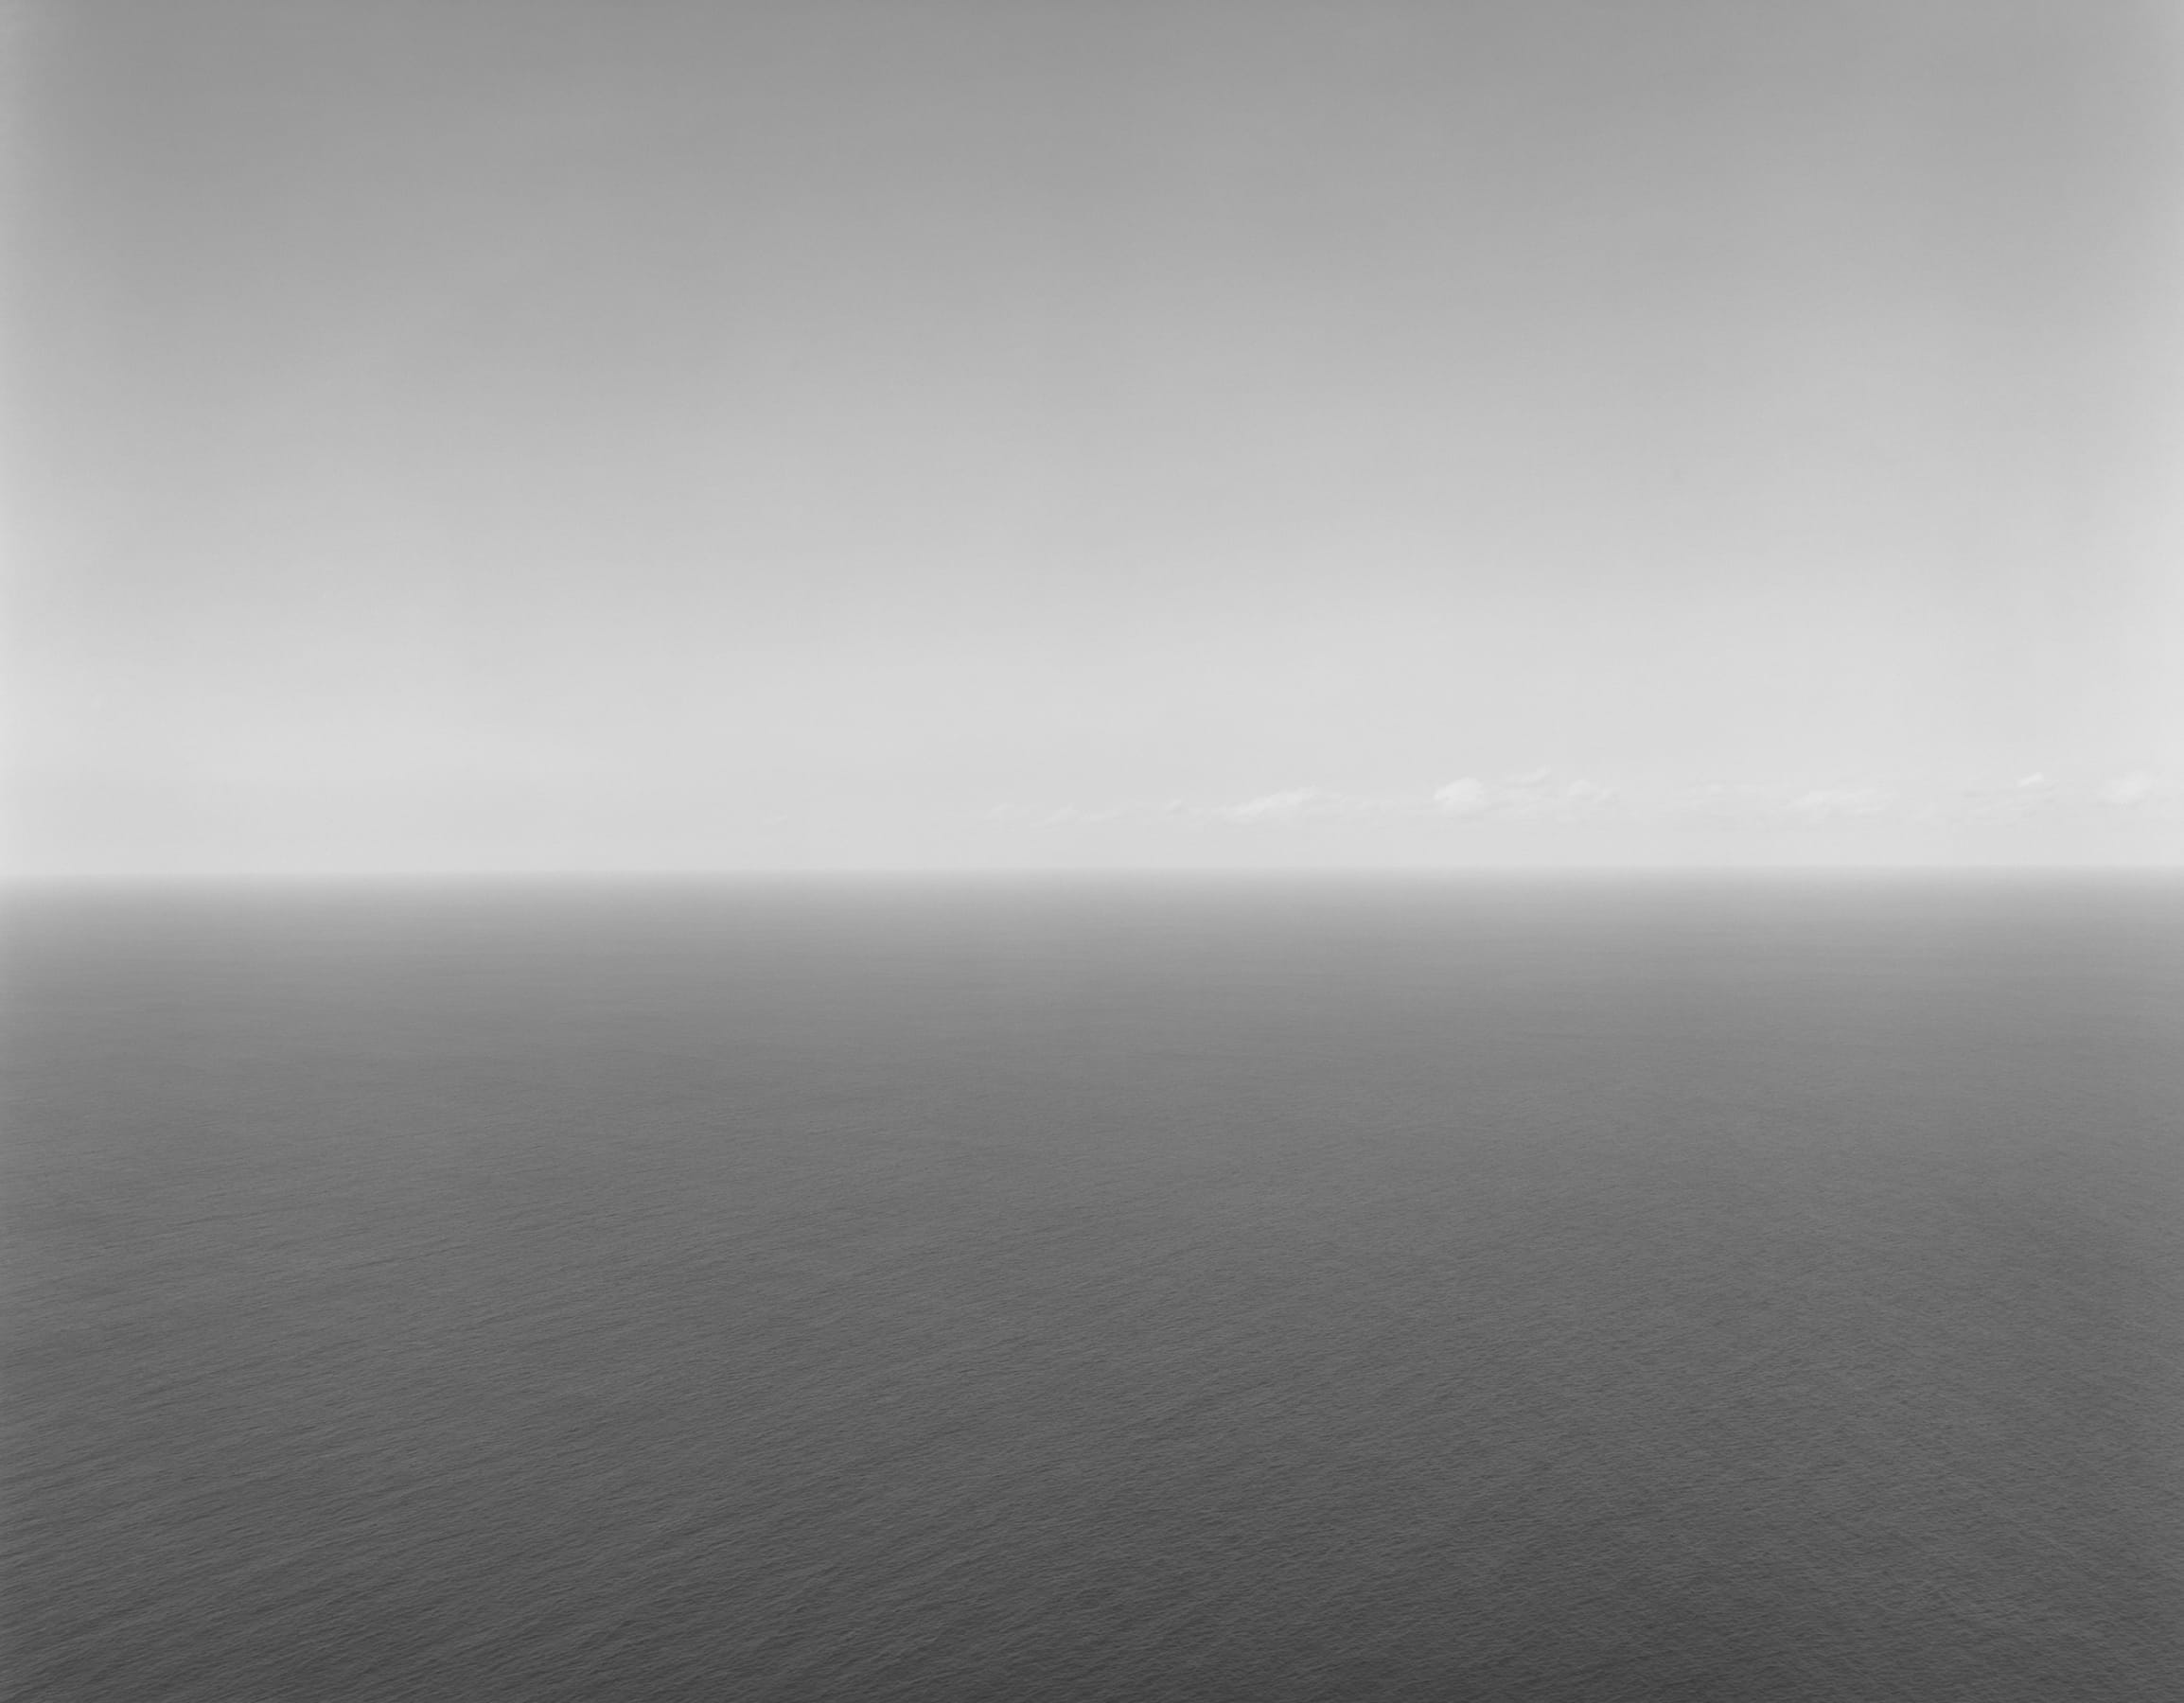 A Hiroshi Sugimoto photograph: A horizon line equally divides the frame between a light gray sky and darker body of calm water.